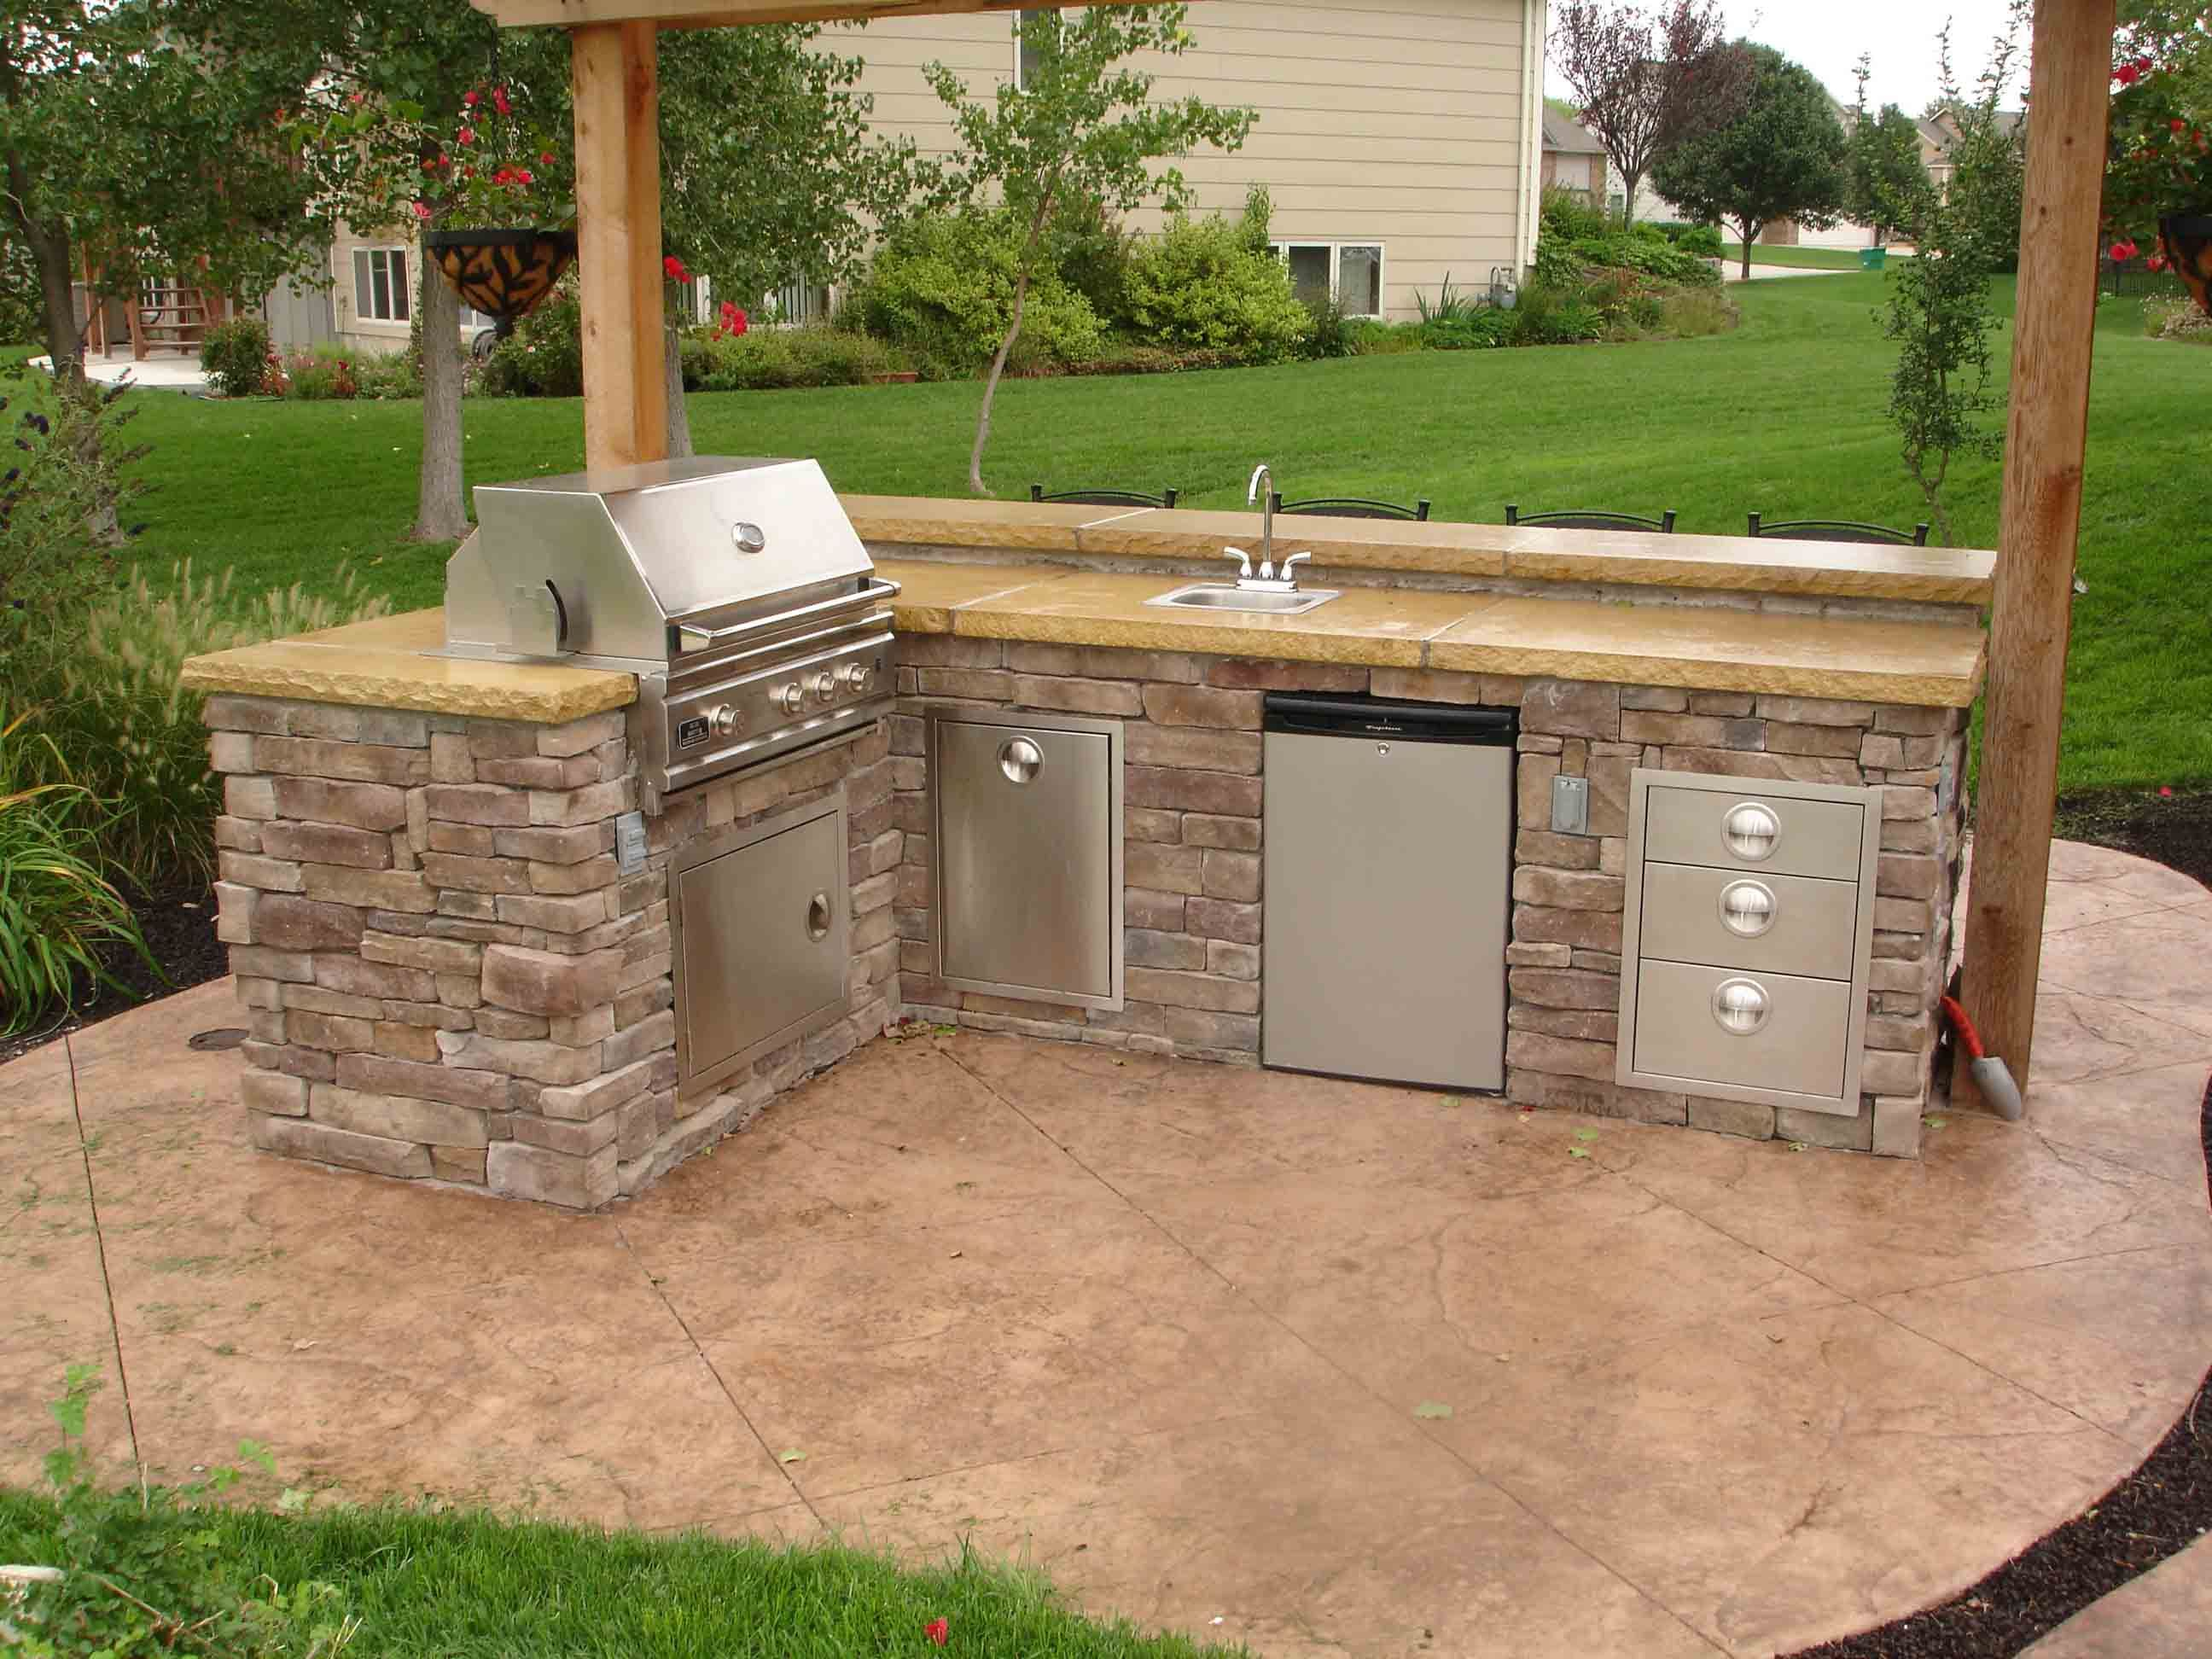 Outdoor island grill for Outdoor grill island ideas